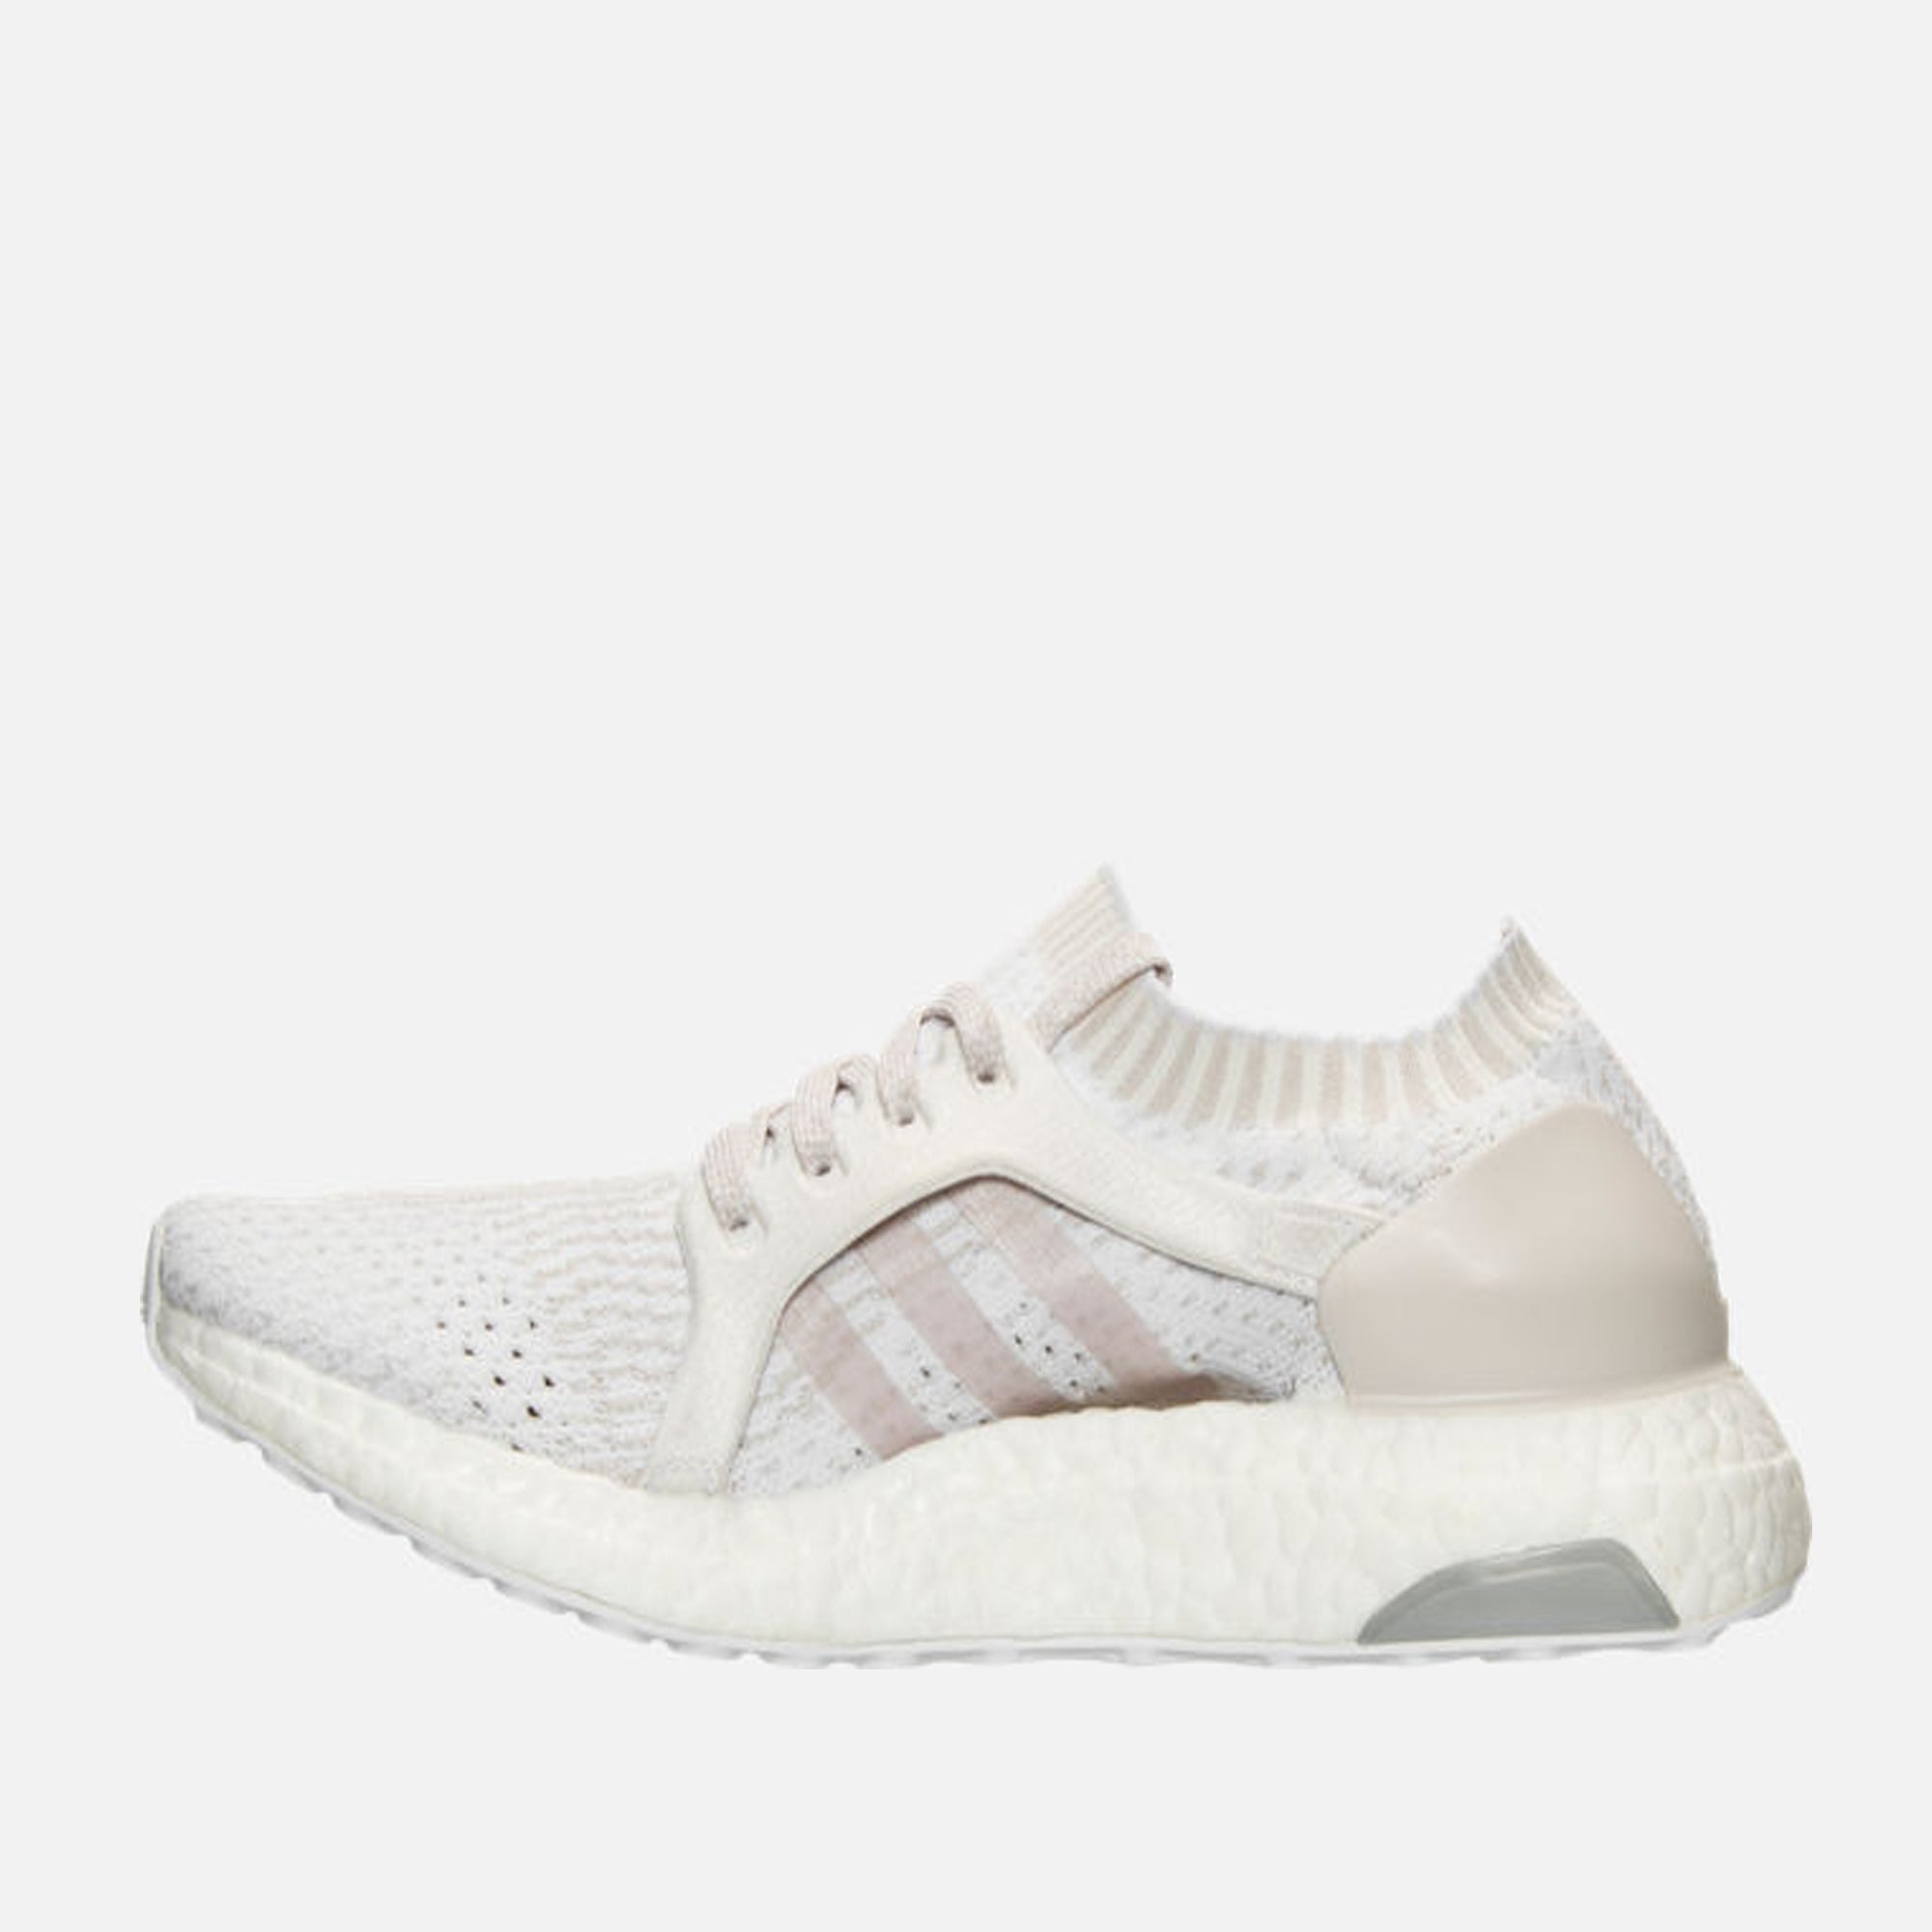 c25f97a37d5 ... new zealand womens adidas ultraboost x running shoes crystal white  pearl grey white c015f 62235